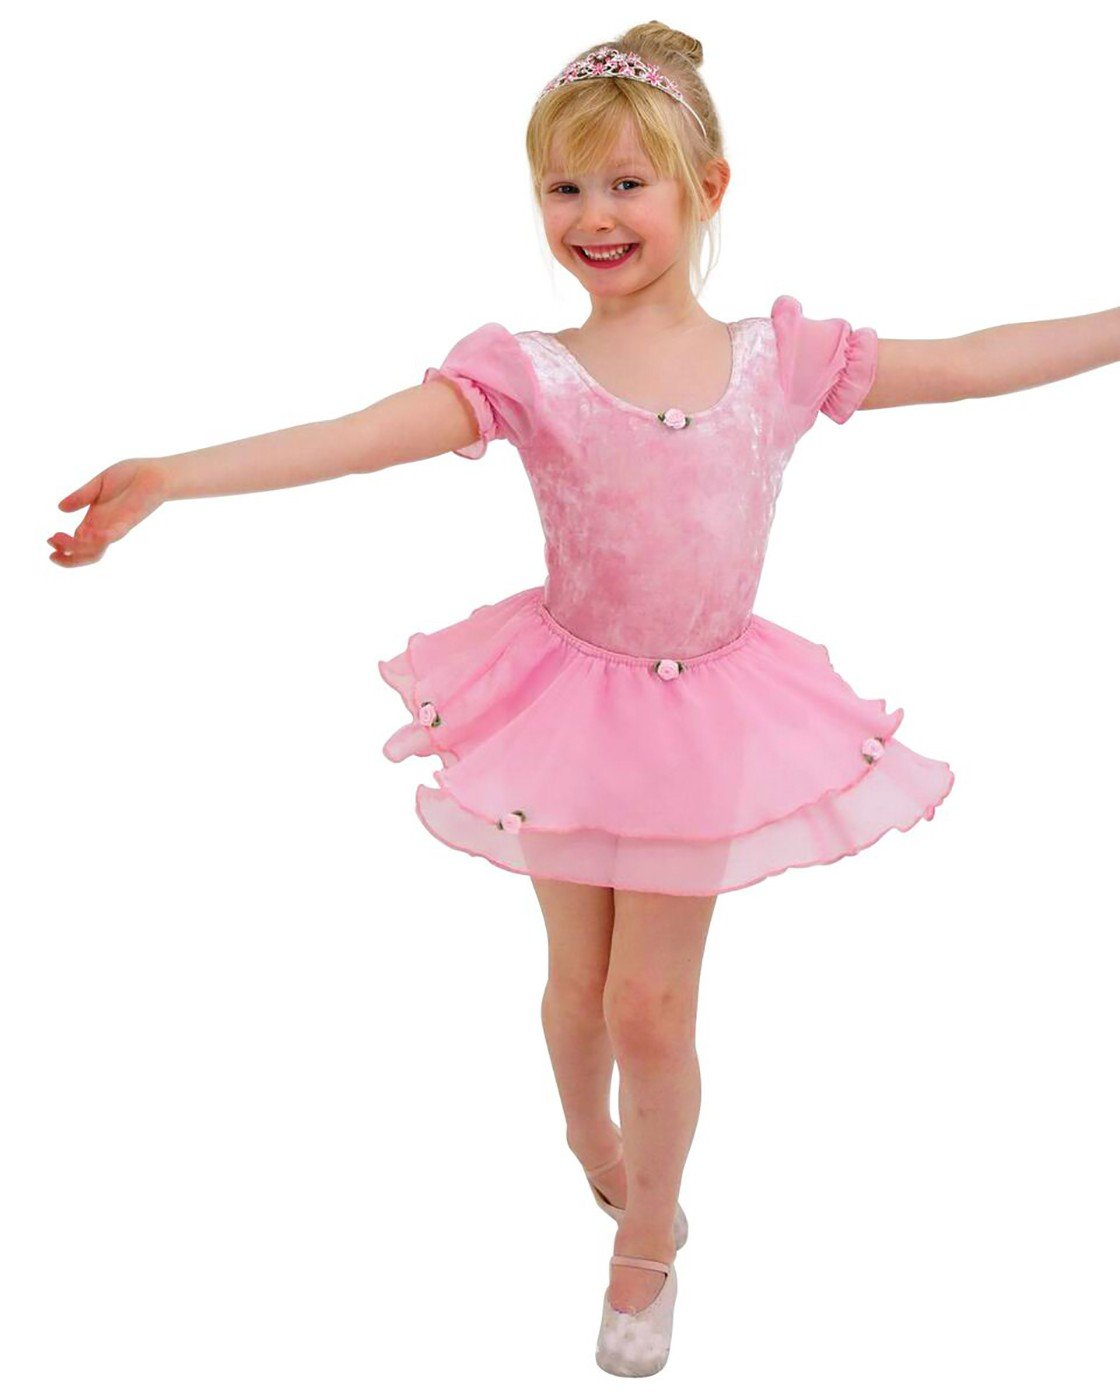 4534d5c82dbe FRILLY LILY QUALITY PINK BALLET LEOTARD DRESS COSTUME UNIFORM WITH ...